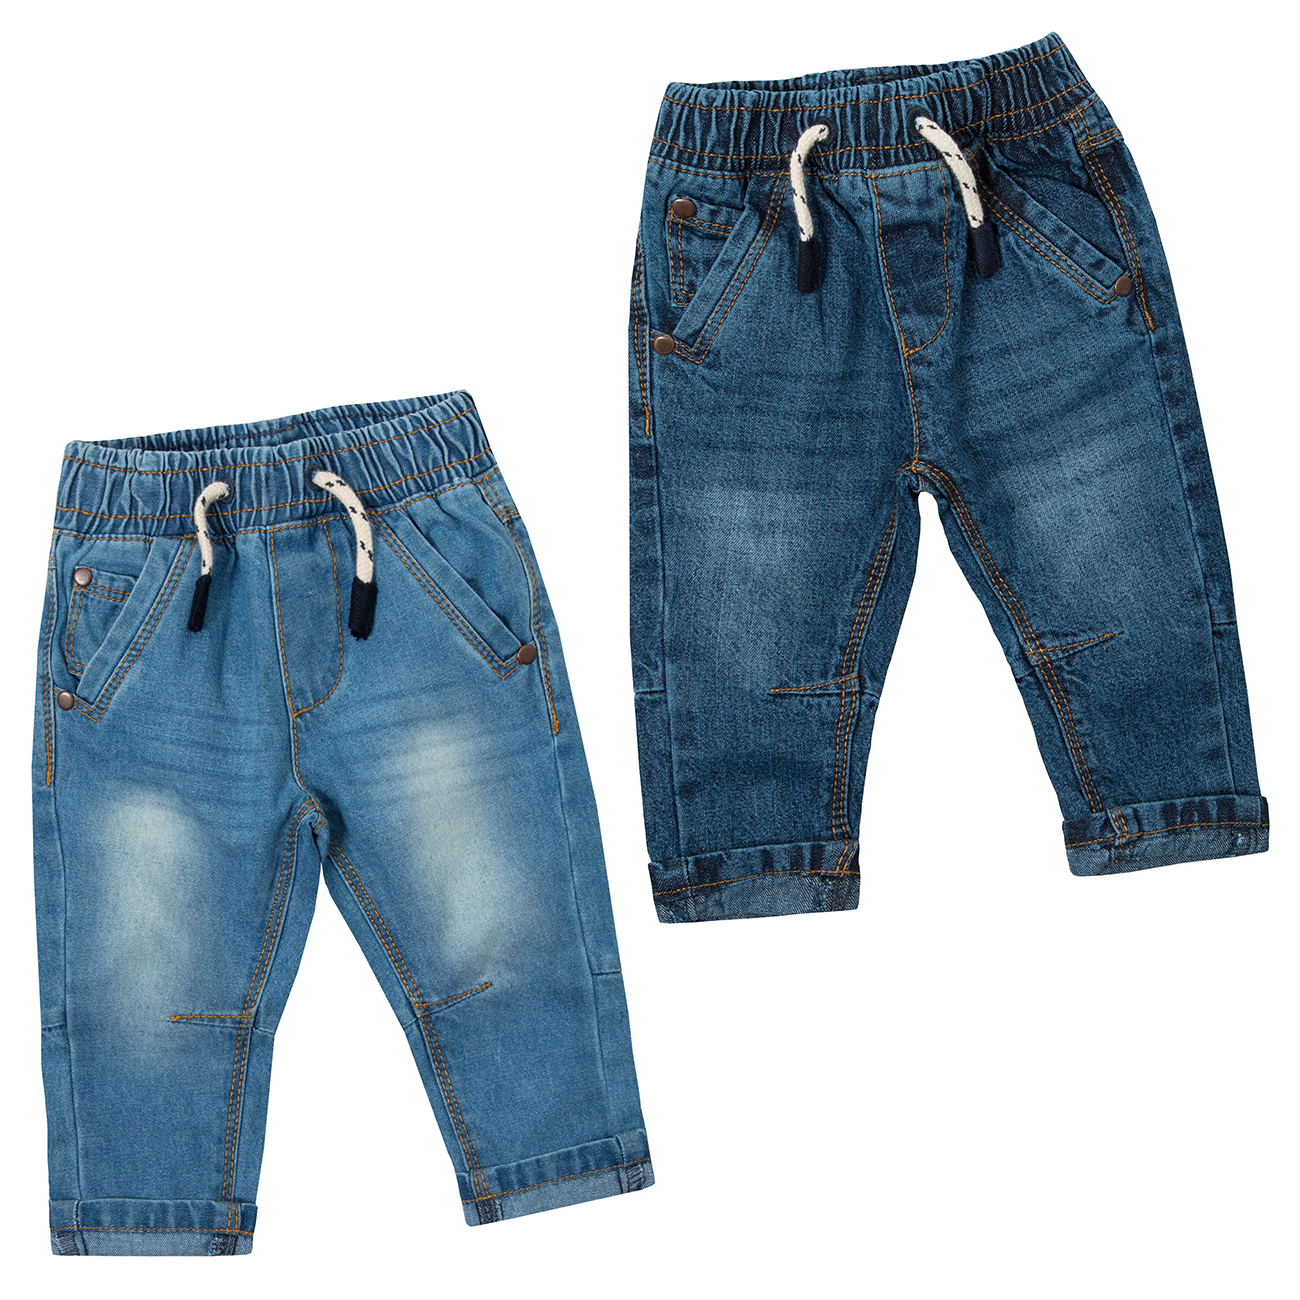 Babytown 9-12 Months Blue Jeans Goods Of Every Description Are Available Baby & Toddler Clothing Clothing, Shoes & Accessories